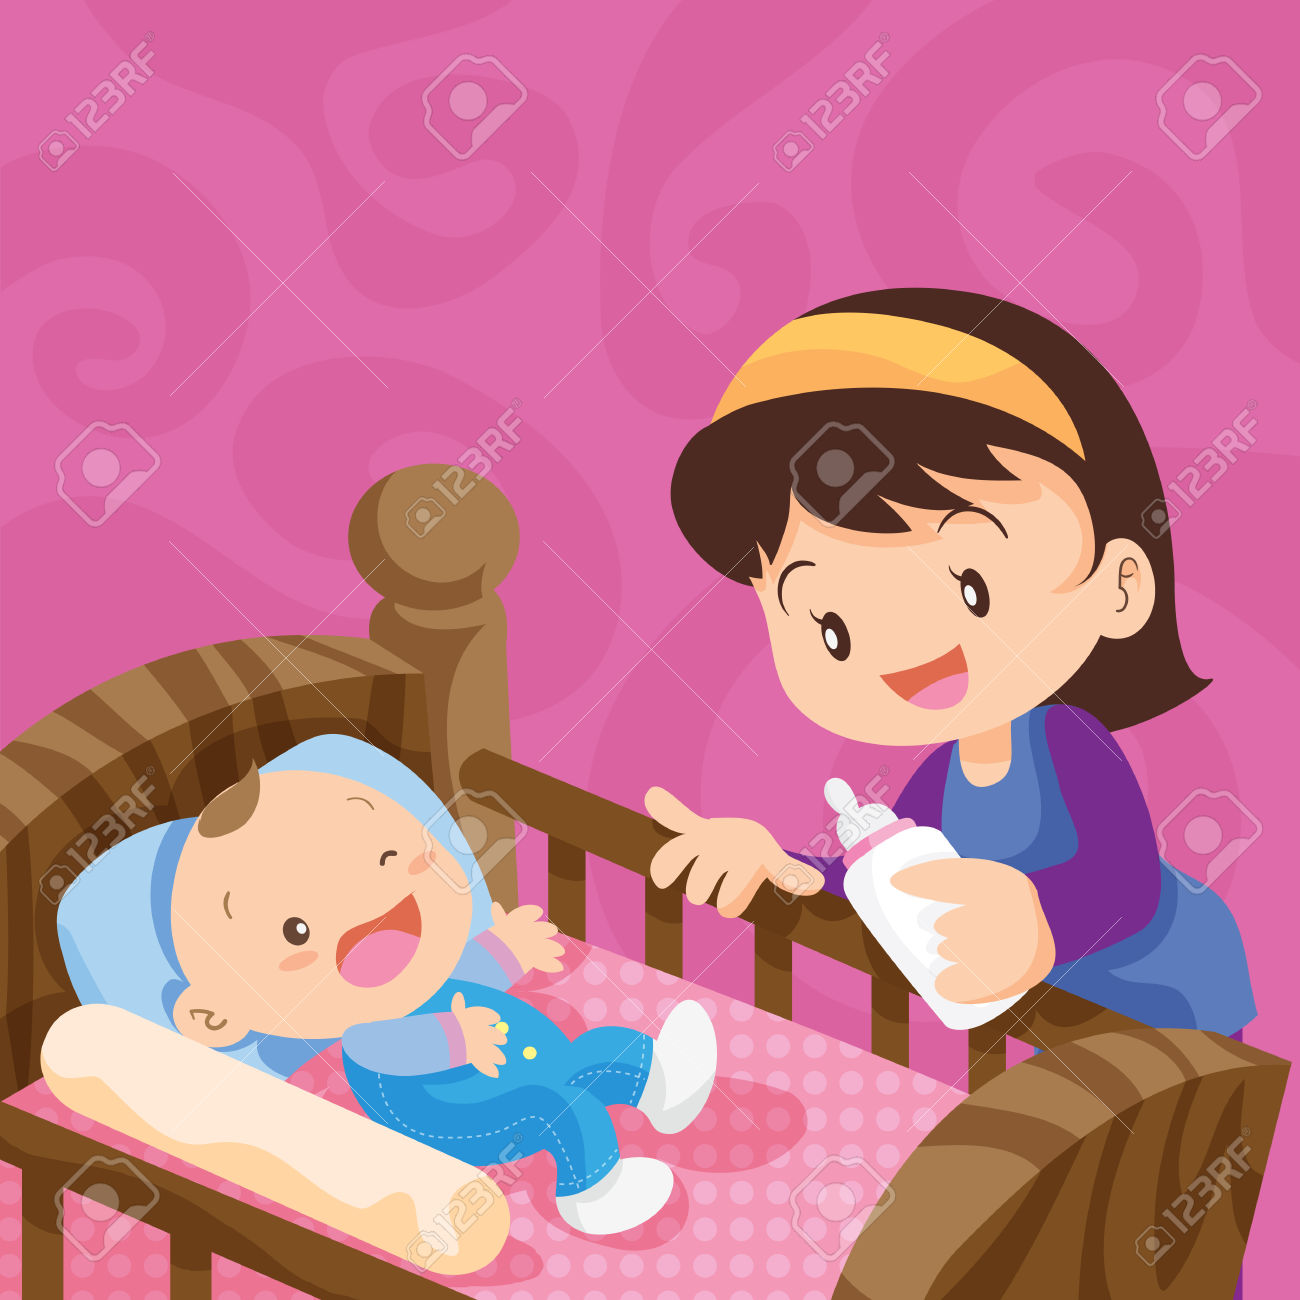 Pretty Baby With Milk Bottle.Cute Baby In The Bed With Mother.